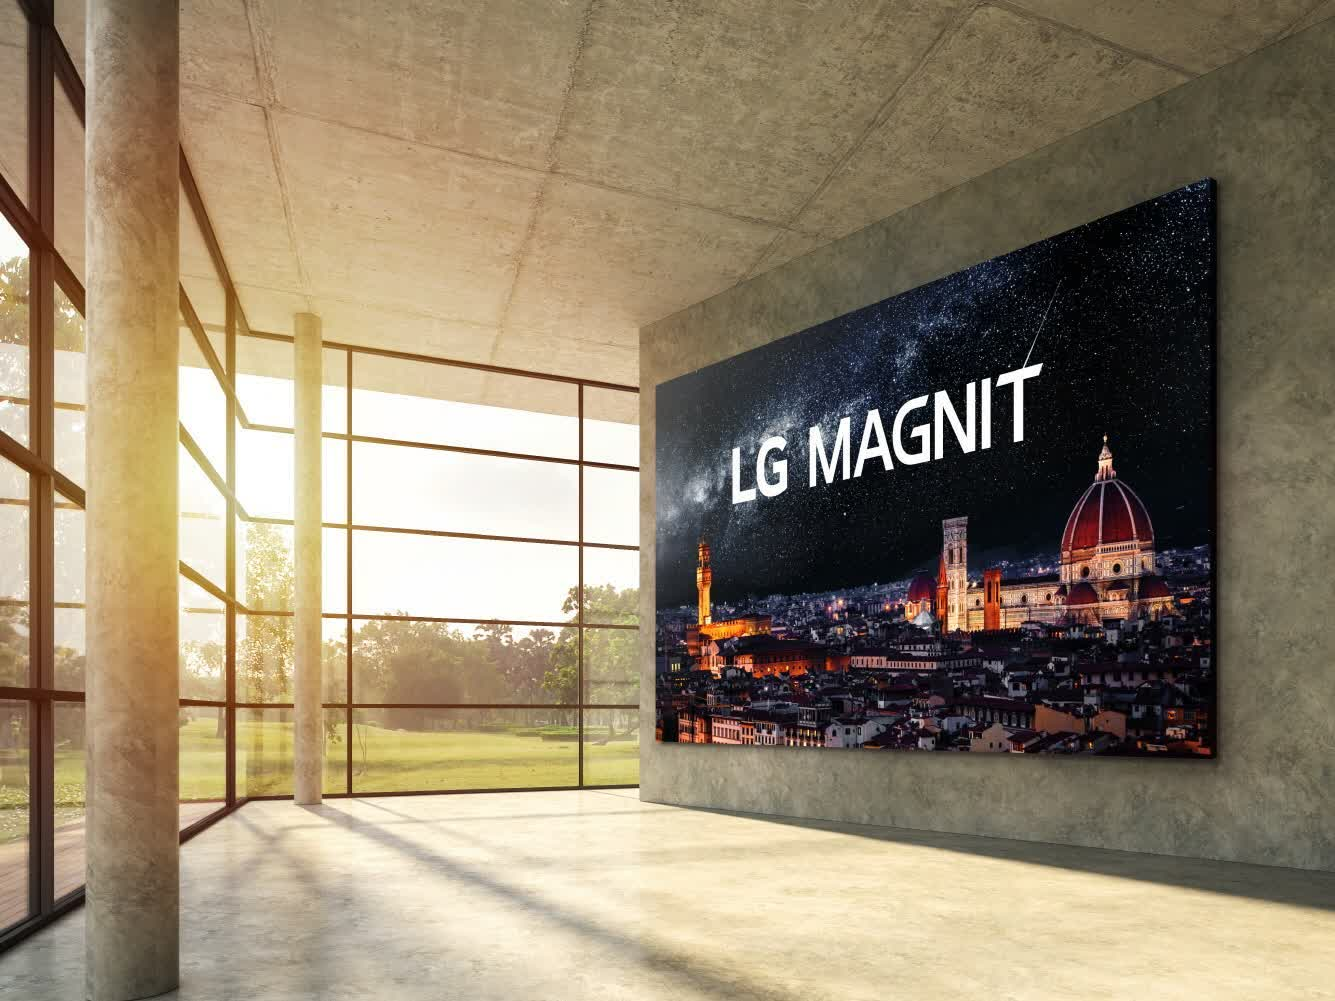 LG unveils 163-inch MicroLED TV thumbnail